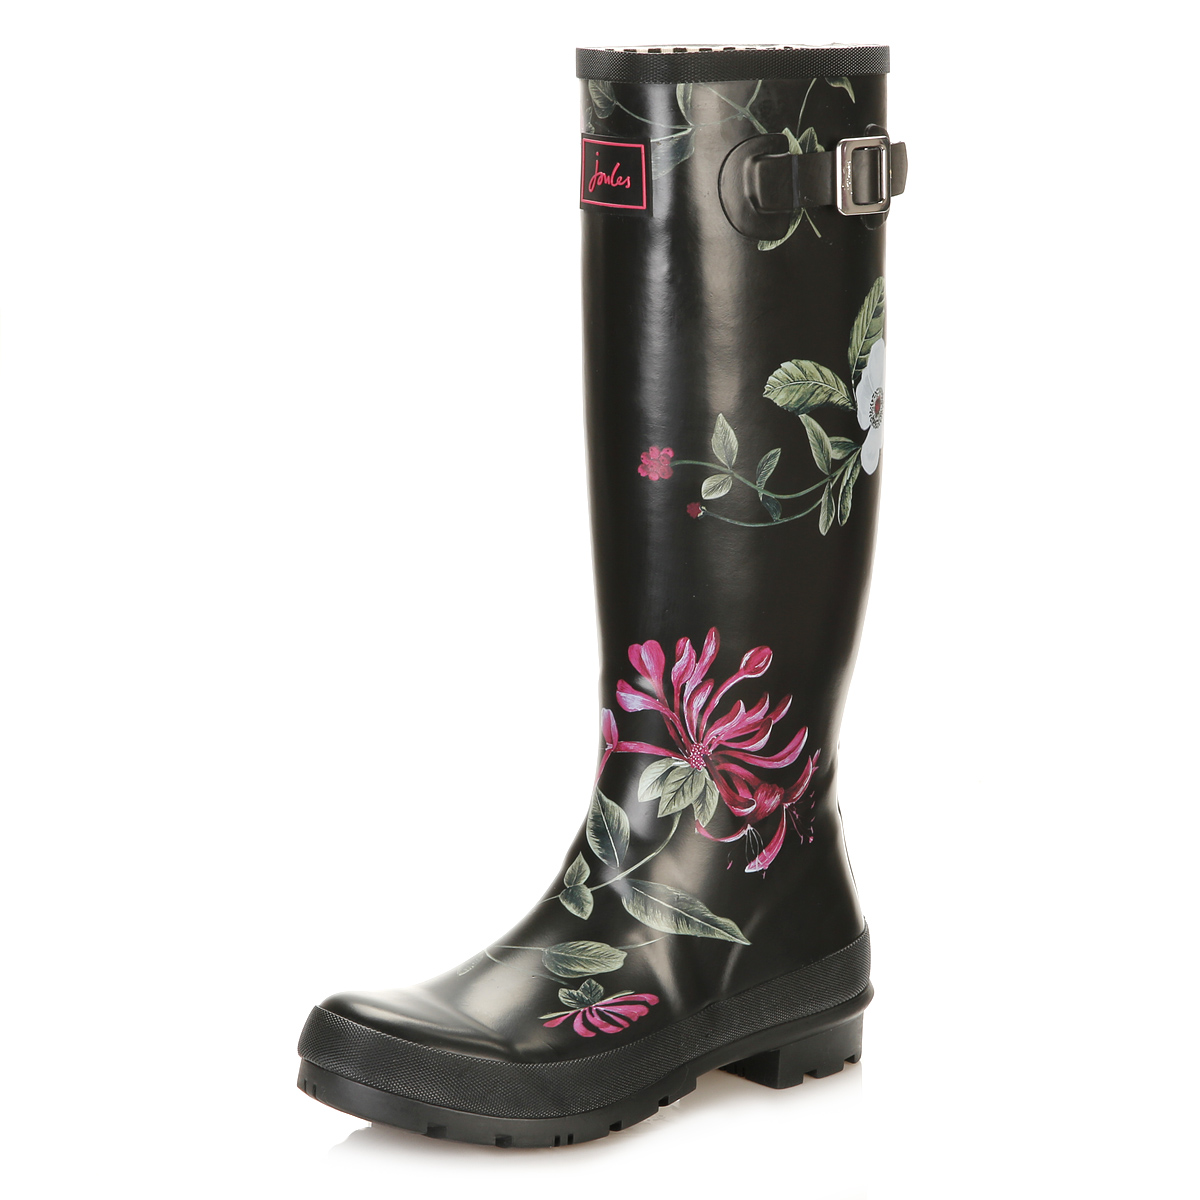 joules womens wellies wellington boots rubber shoes